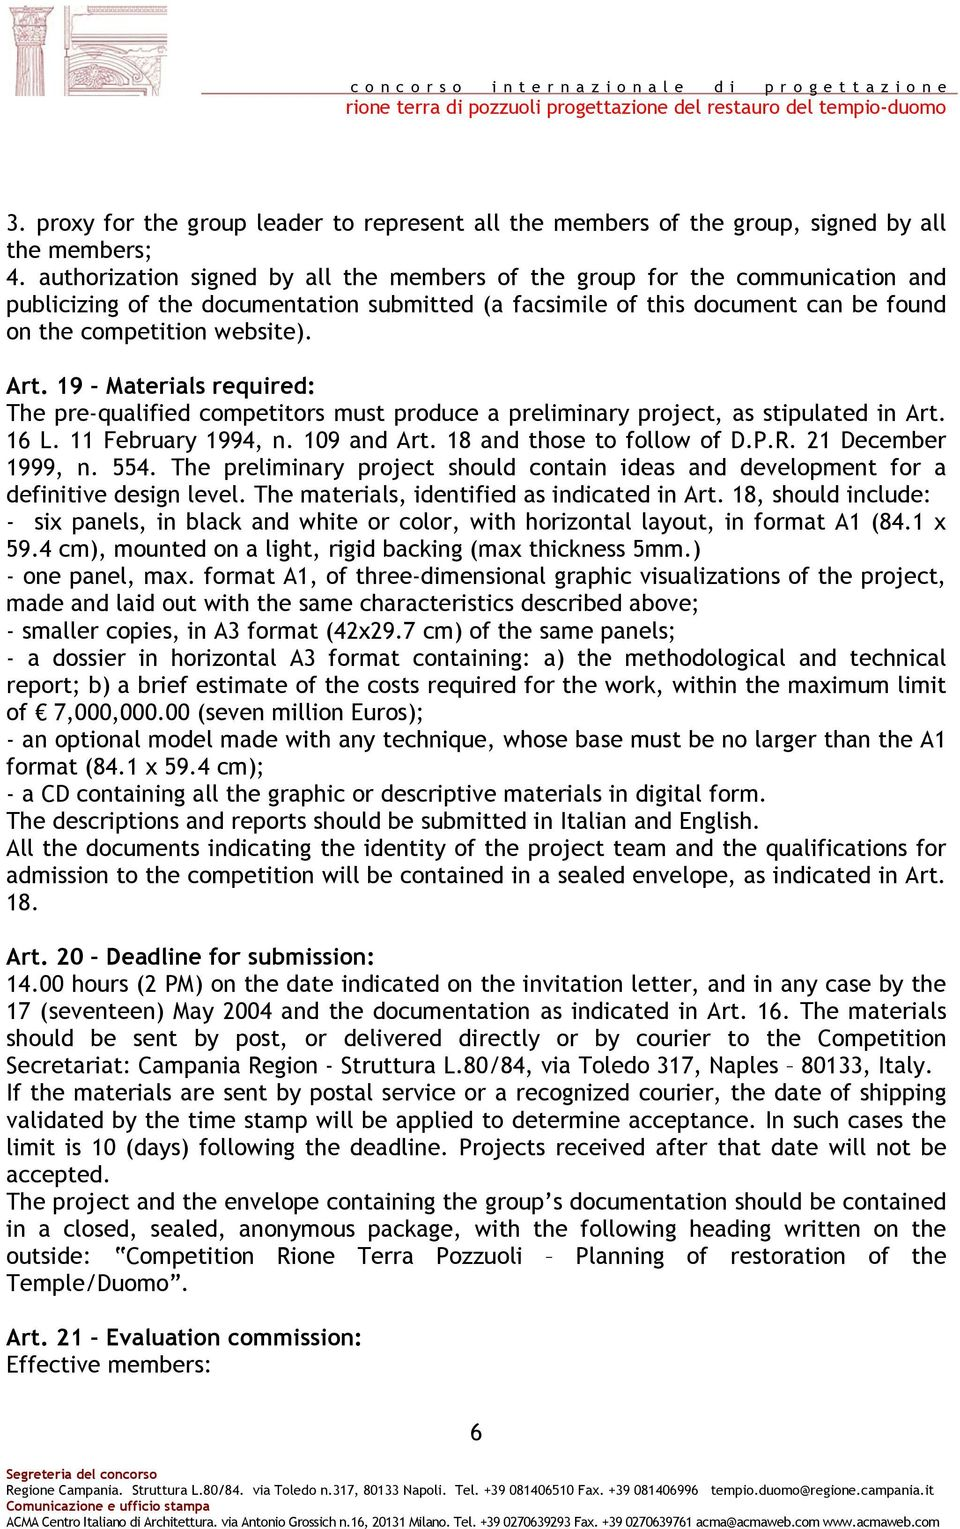 19 Materials required: The pre-qualified competitors must produce a preliminary project, as stipulated in Art. 16 L. 11 February 1994, n. 109 and Art. 18 and those to follow of D.P.R.